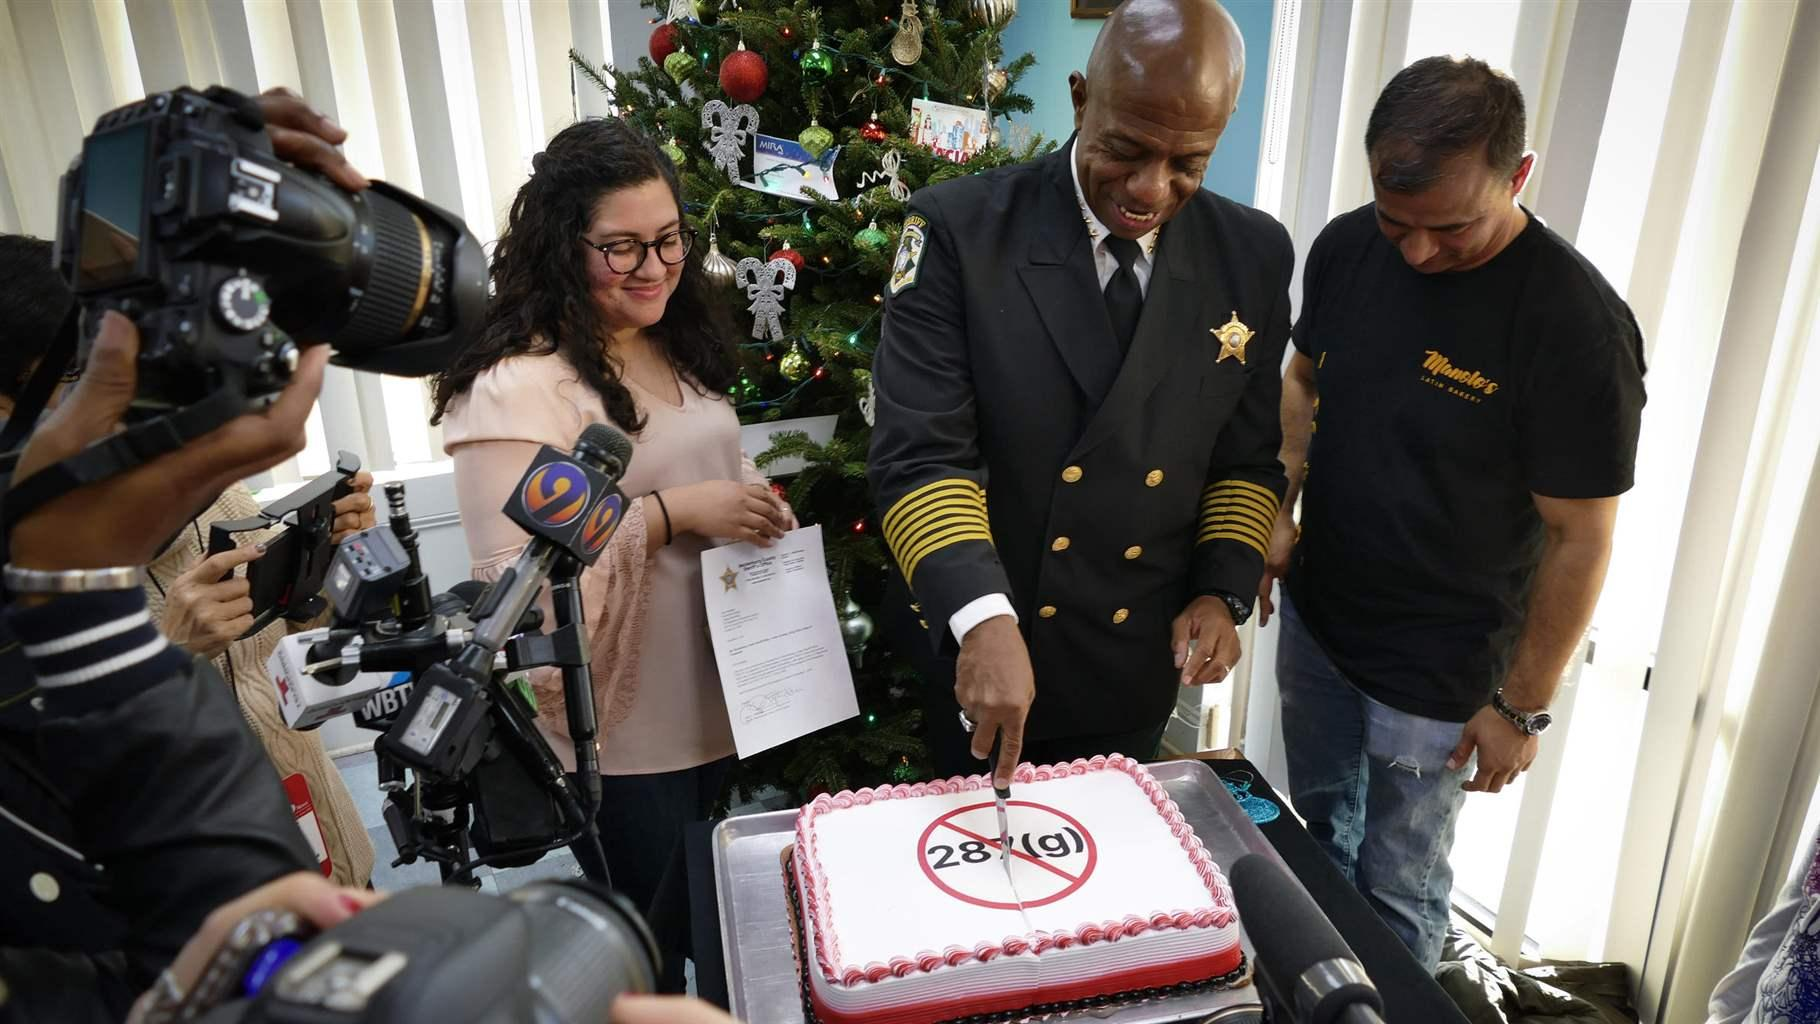 Sheriff Garry McFadden of Mecklenburg County, North Carolina, celebrates his election in November by slicing a cake frosted with a message in protest of 287(g), the federal immigration enforcement and deportation program he pledged to end in the county. An increase in arrests related to the program is losing steam as more big-city sheriffs back out of it, even as more smaller counties in conservative areas join up.